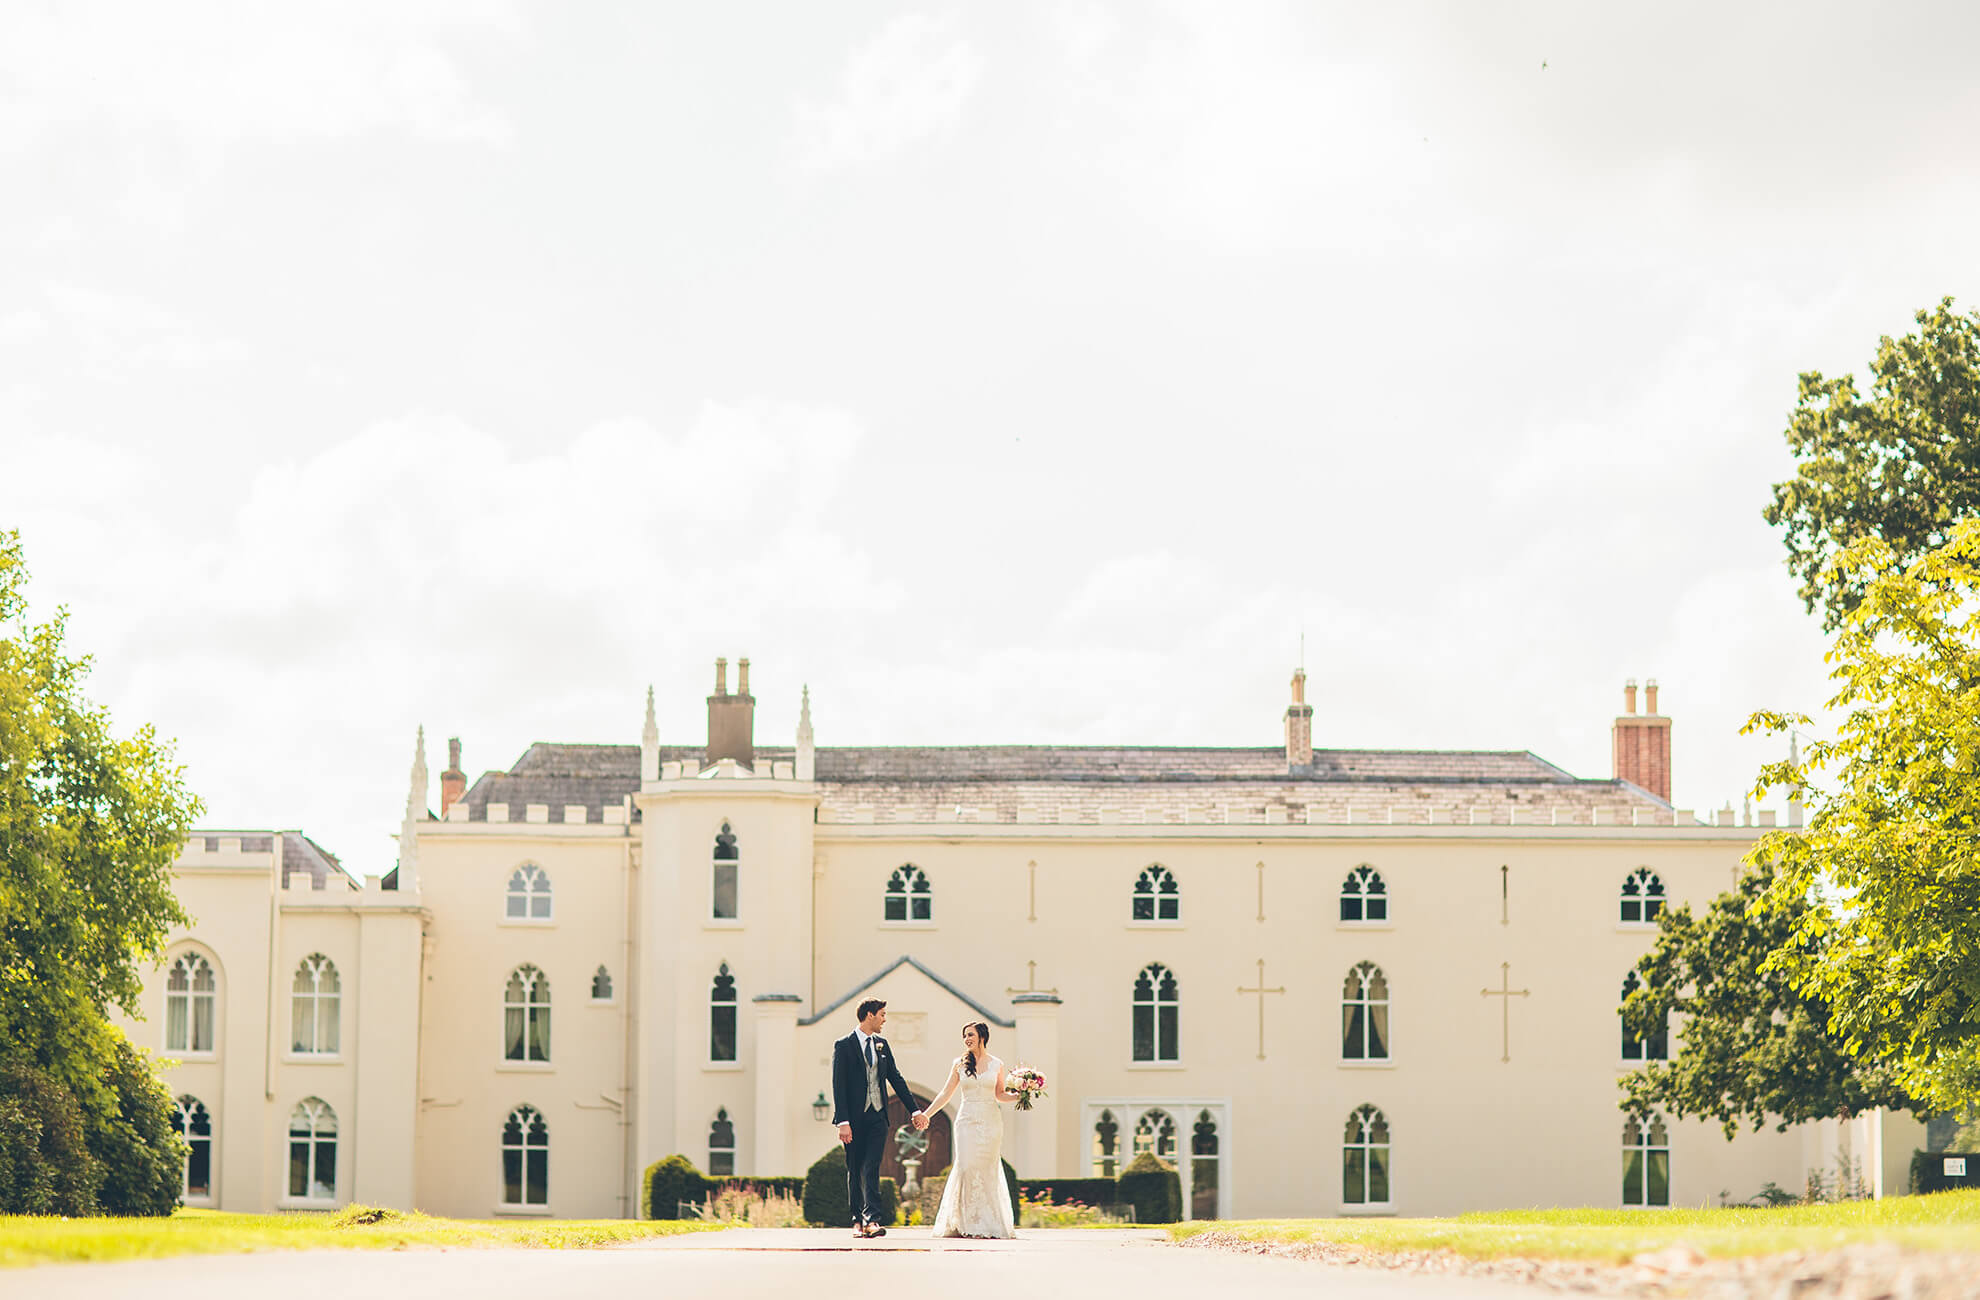 The new husband and wife take a stroll down the drive in front of the North Wing at Combermere Abbey in Cheshire